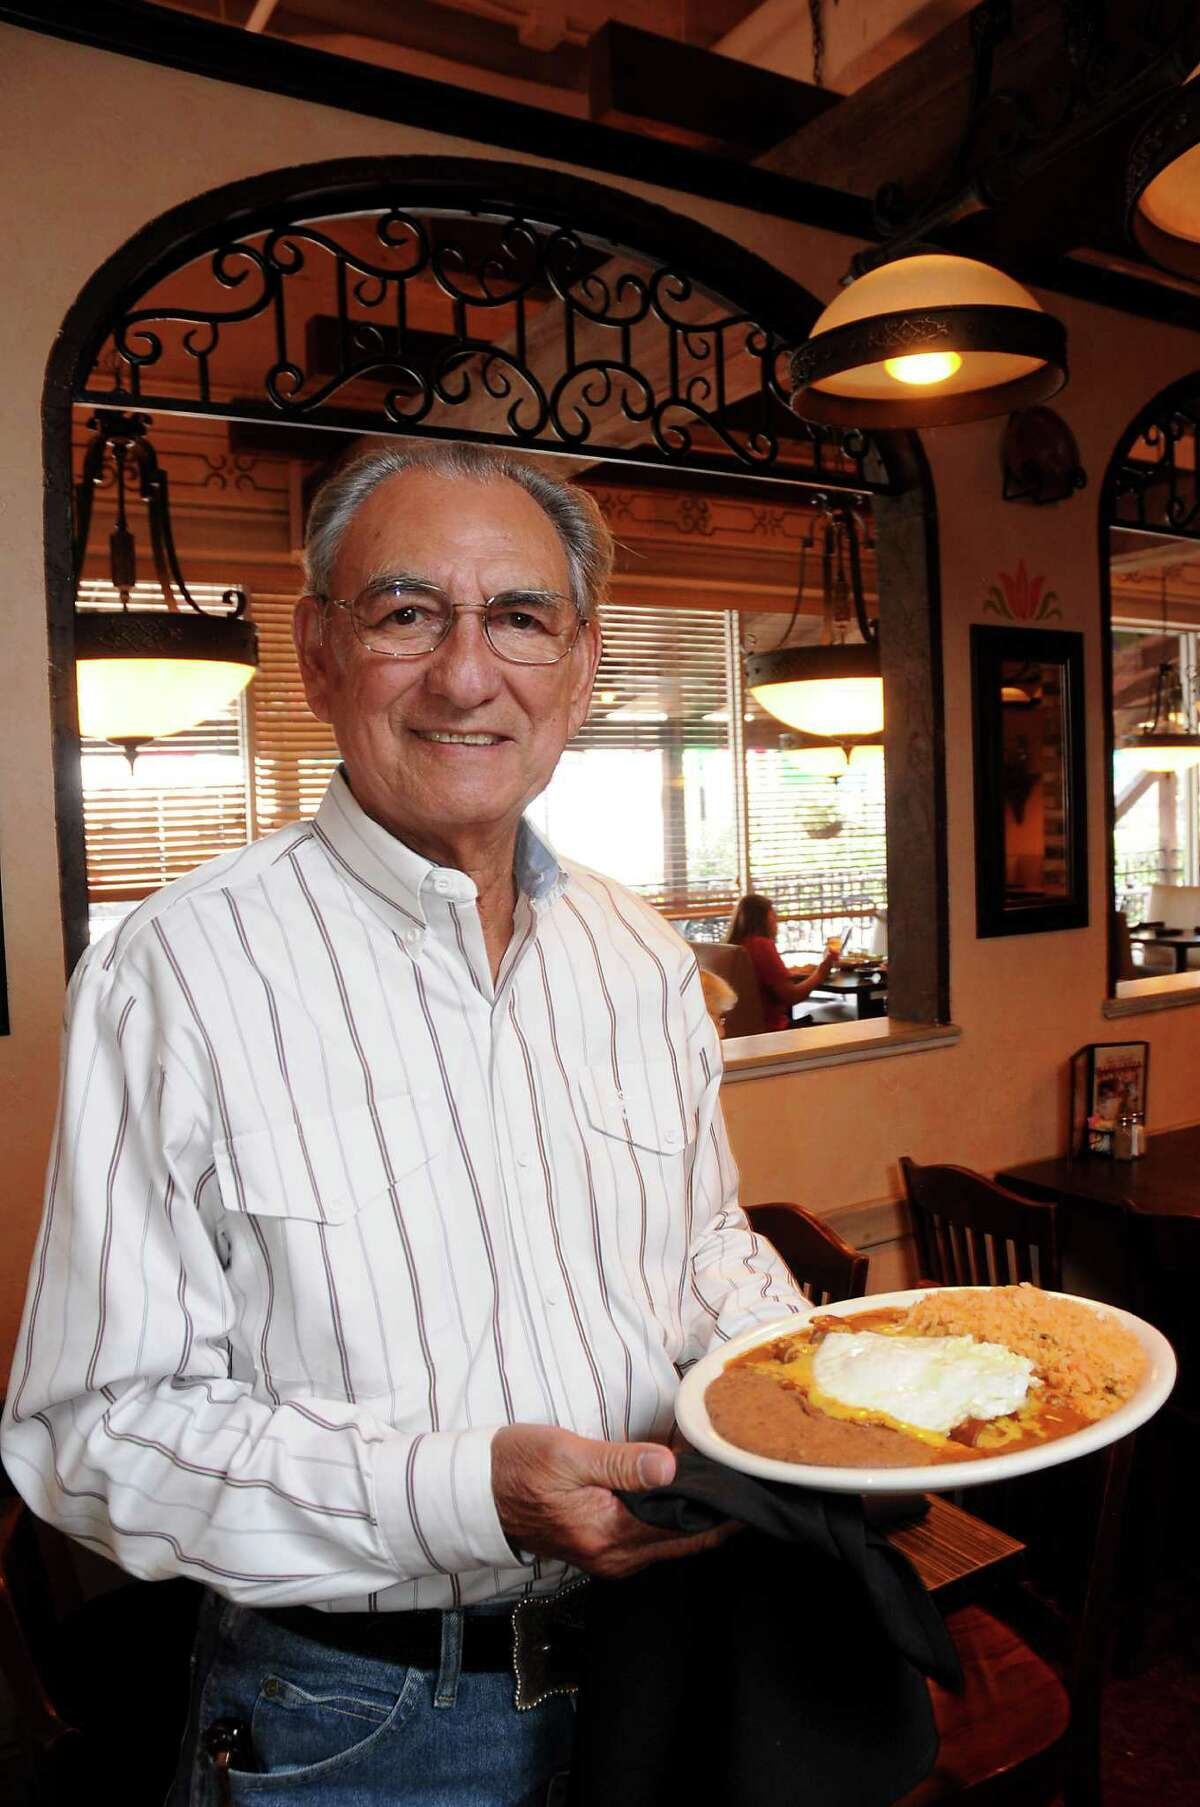 Raul Molina Jr. with a plate of cheese enchiladas and a fried egg at Molina's Cantina on Bellaire Tuesday Aug. 30, 2016. (Dave Rossman Photo)